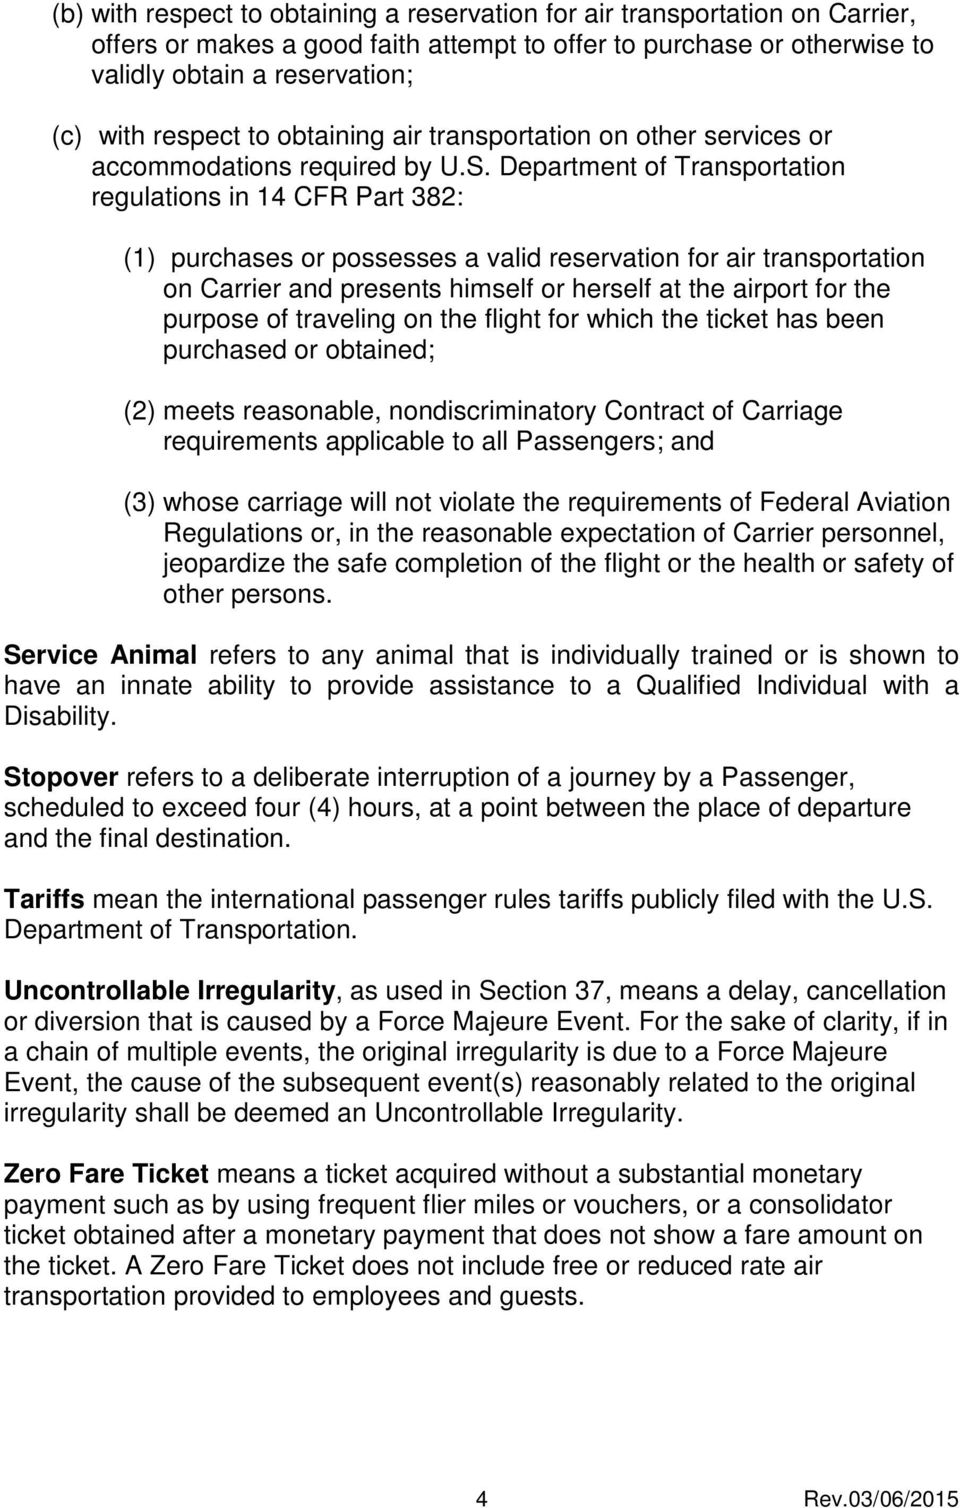 Department of Transportation regulations in 14 CFR Part 382: (1) purchases or possesses a valid reservation for air transportation on Carrier and presents himself or herself at the airport for the